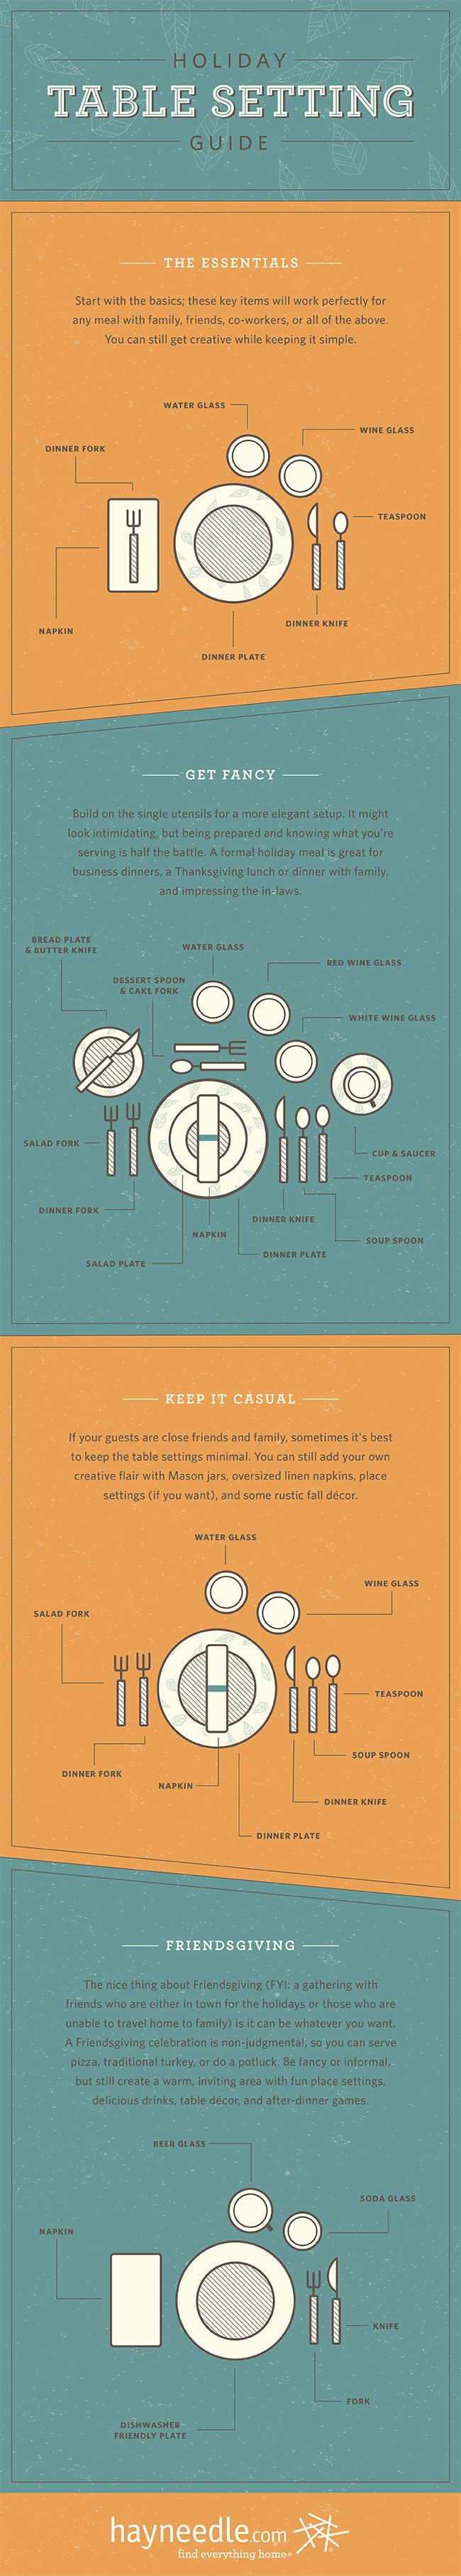 Holiday Table Setting Guide Guide Infographic.